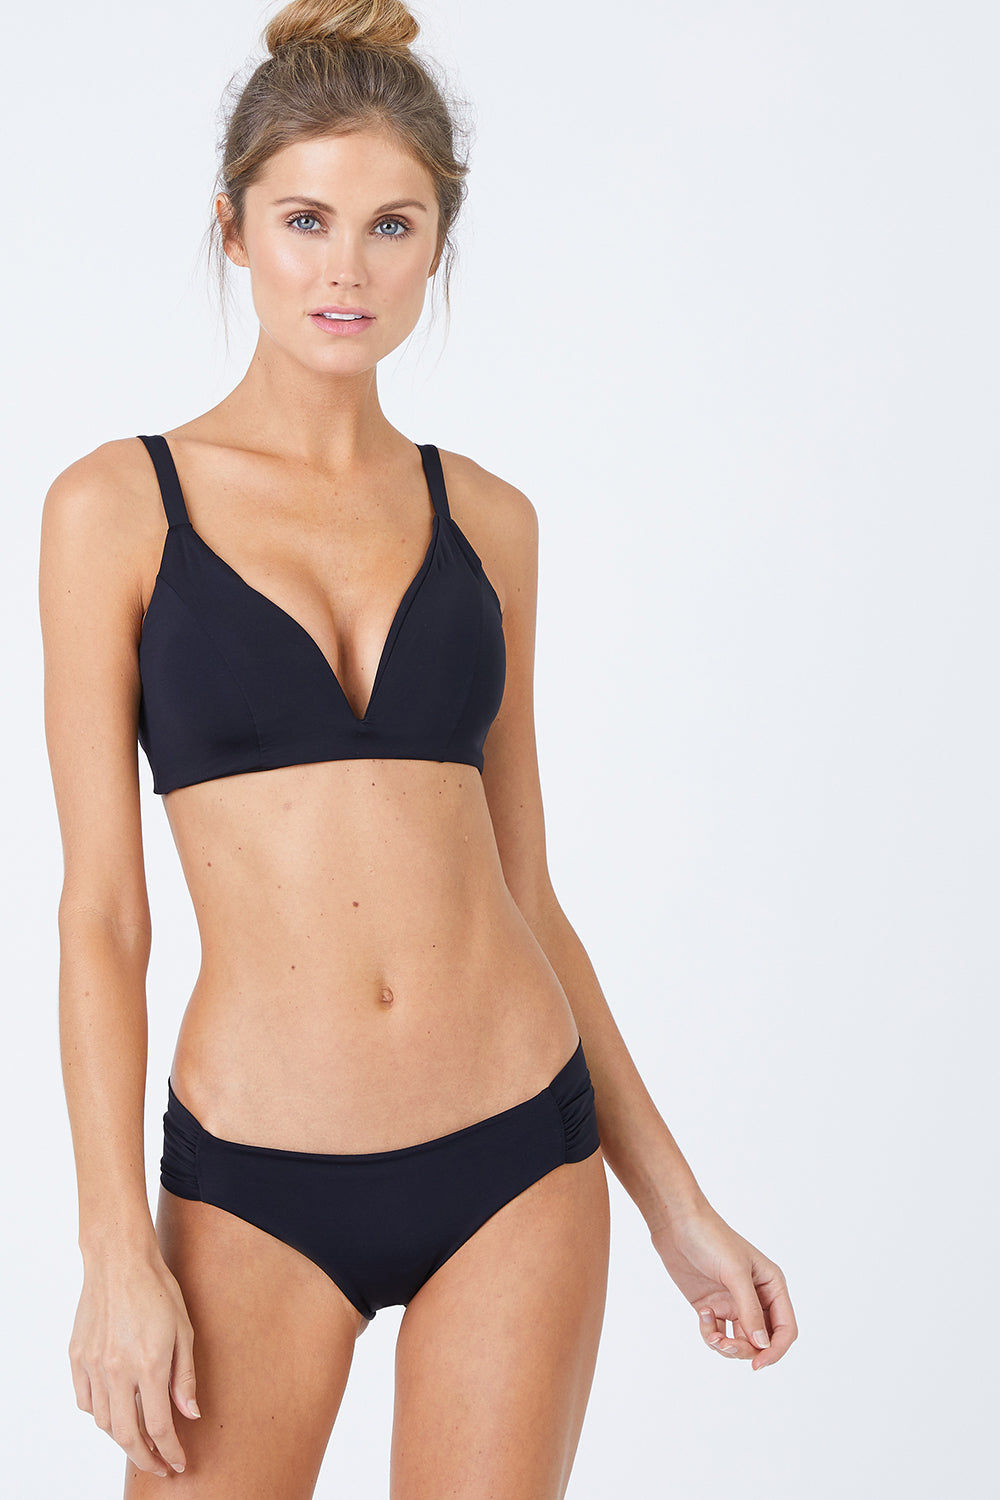 MALAI Baltic Crop Bikini Top - Black Bikini Top |  Black| Malai Baltic Crop Bikini Top - Black. Features:  Crop top bikini top  Supportive adjustable shoulder straps Double straps at back Provides additional padding Front View